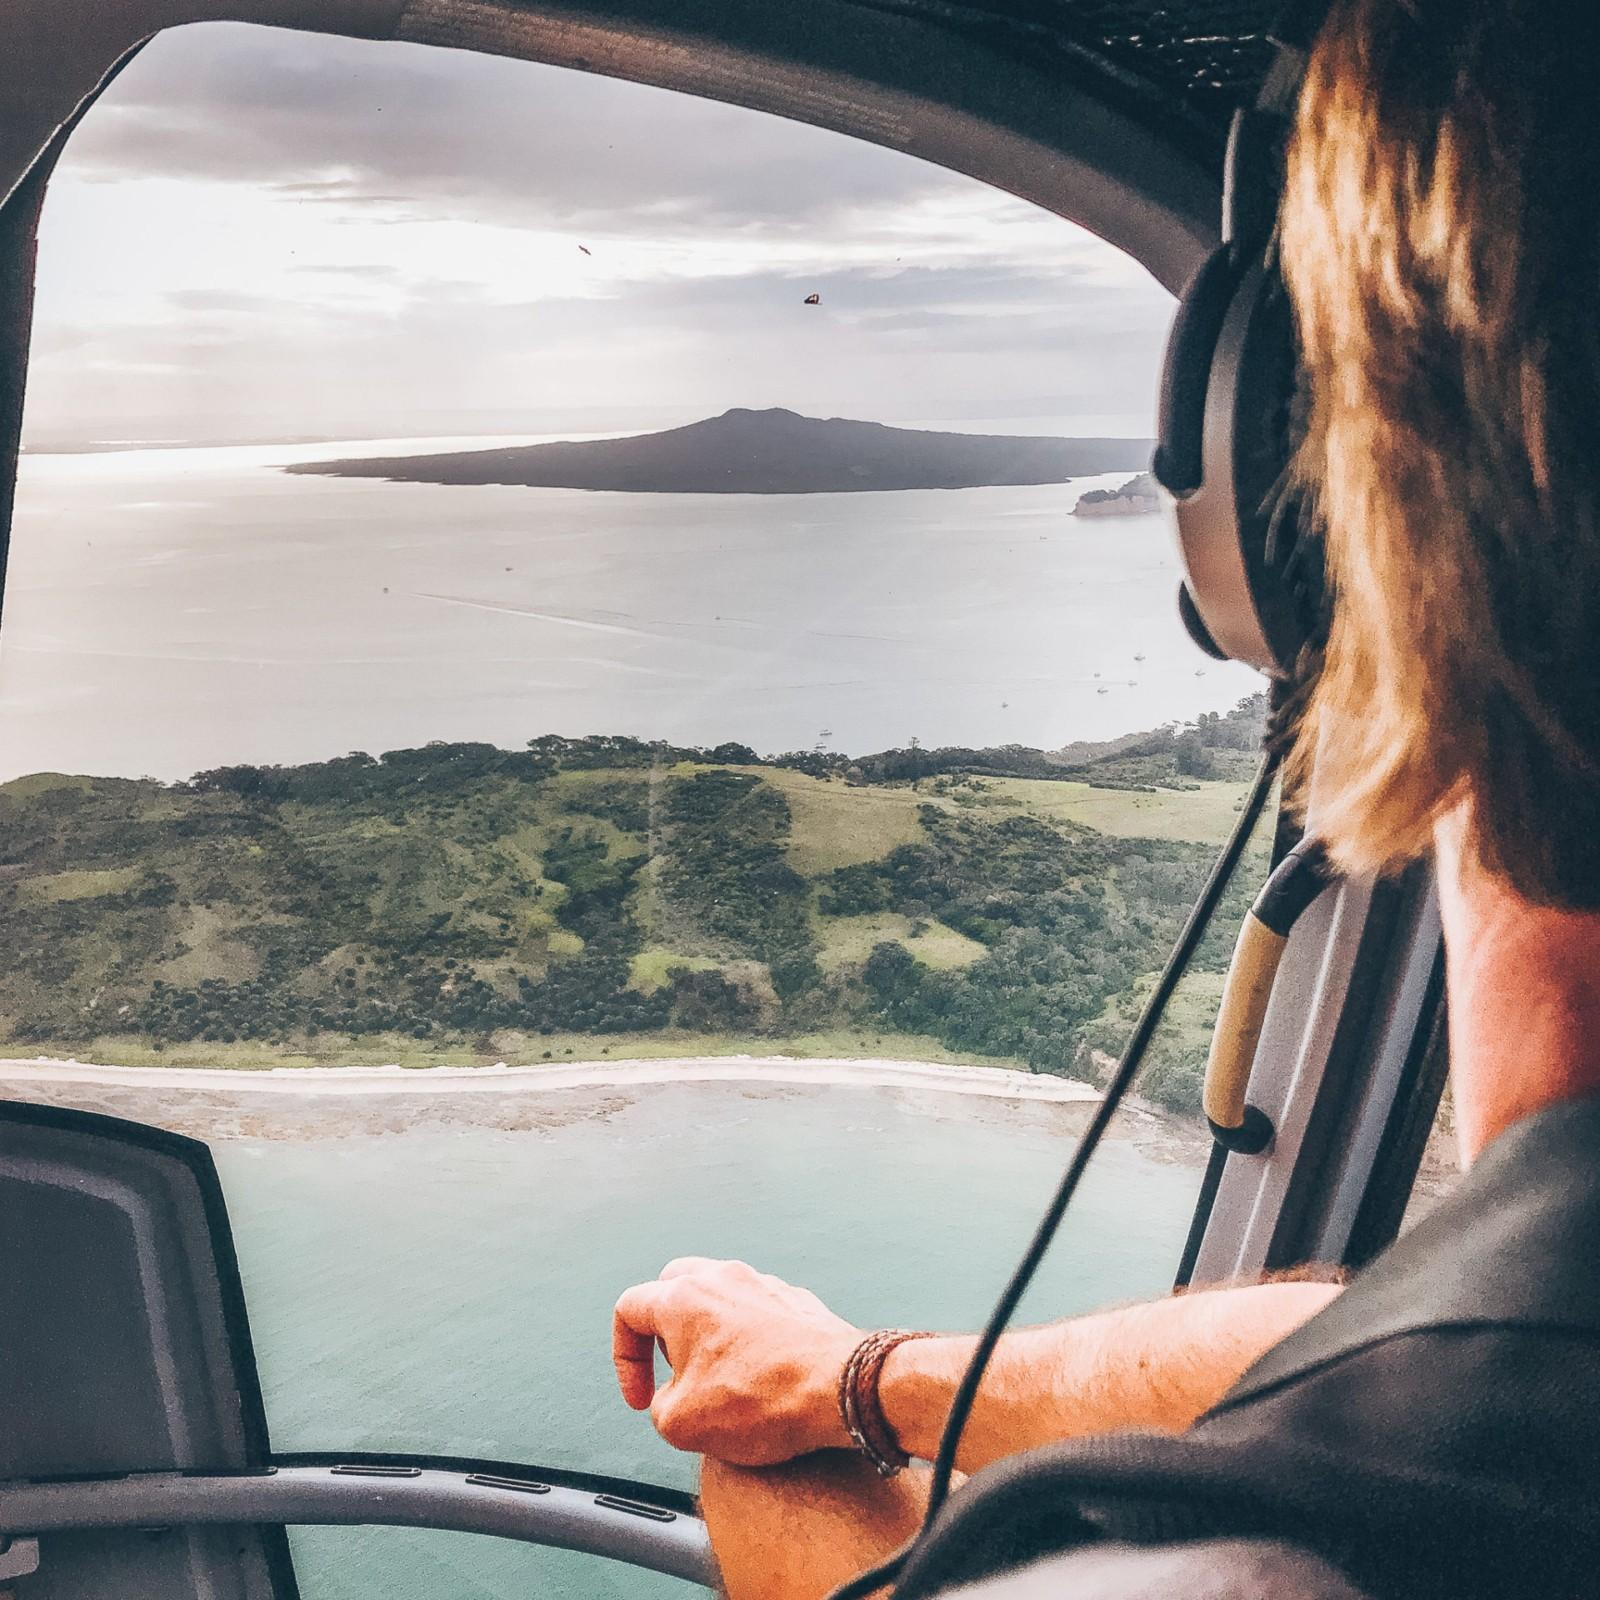 Rangitoto Island from Inside the helicopter